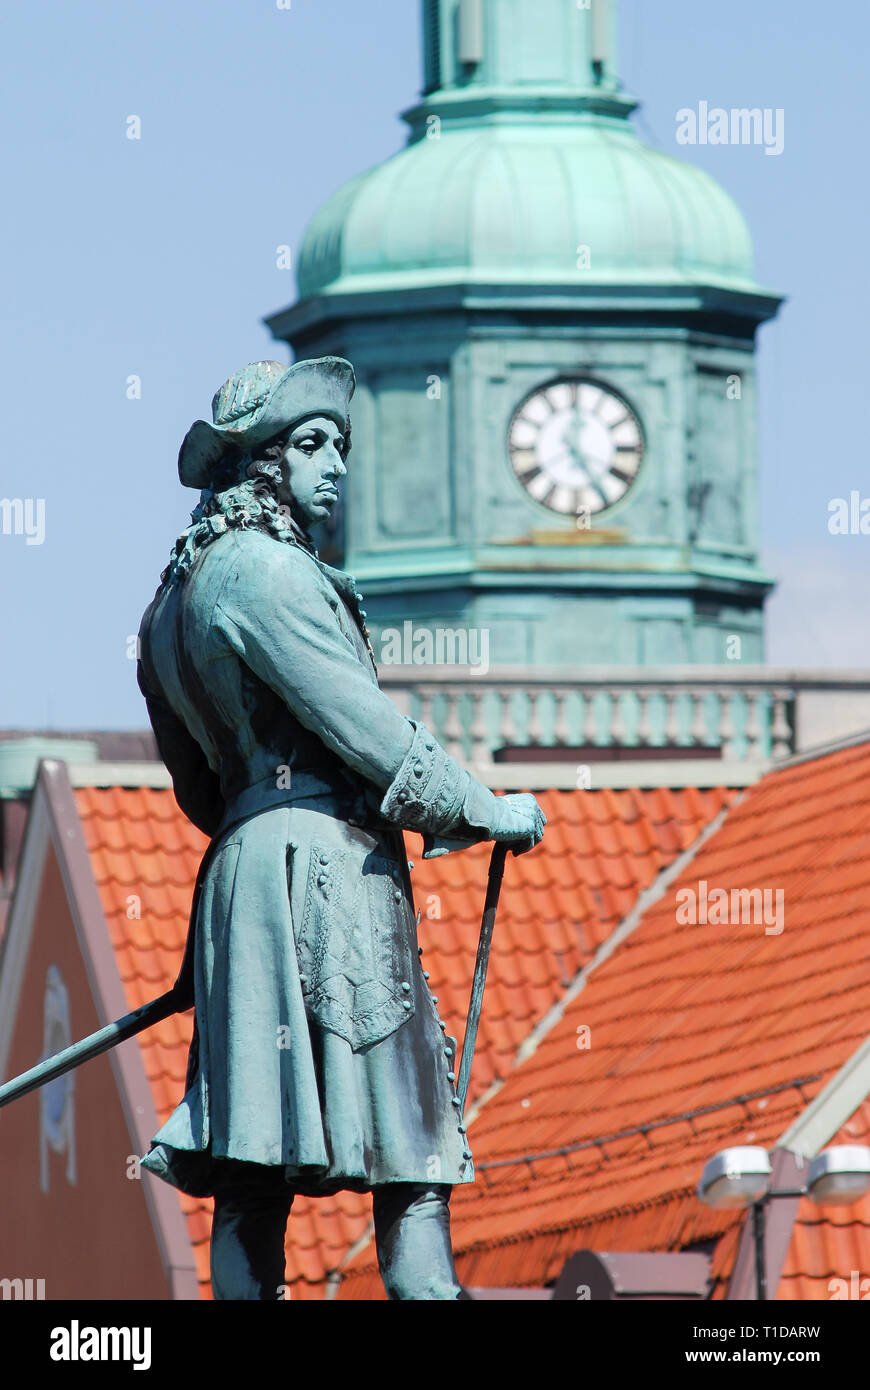 King Karl XI of Sweden statue (founder of city) on Stortorget on Trosso island listed World Heritage by UNESCO in Karlskrona, Blekinge, Sweden. May 23 - Stock Image